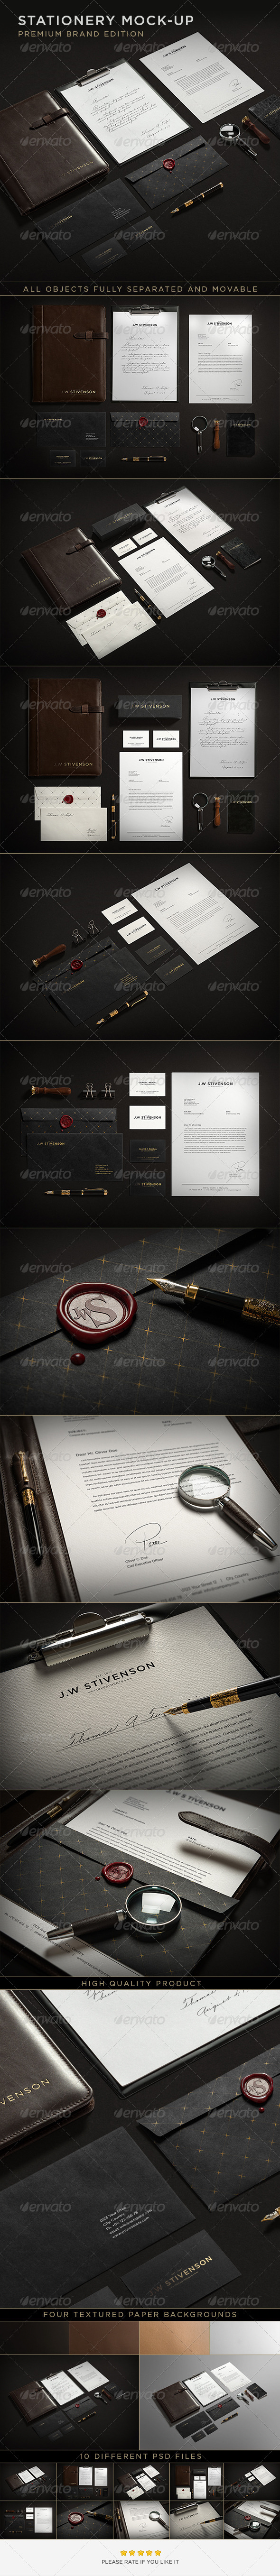 GraphicRiver Stationery Branding Mock-Up 6527818